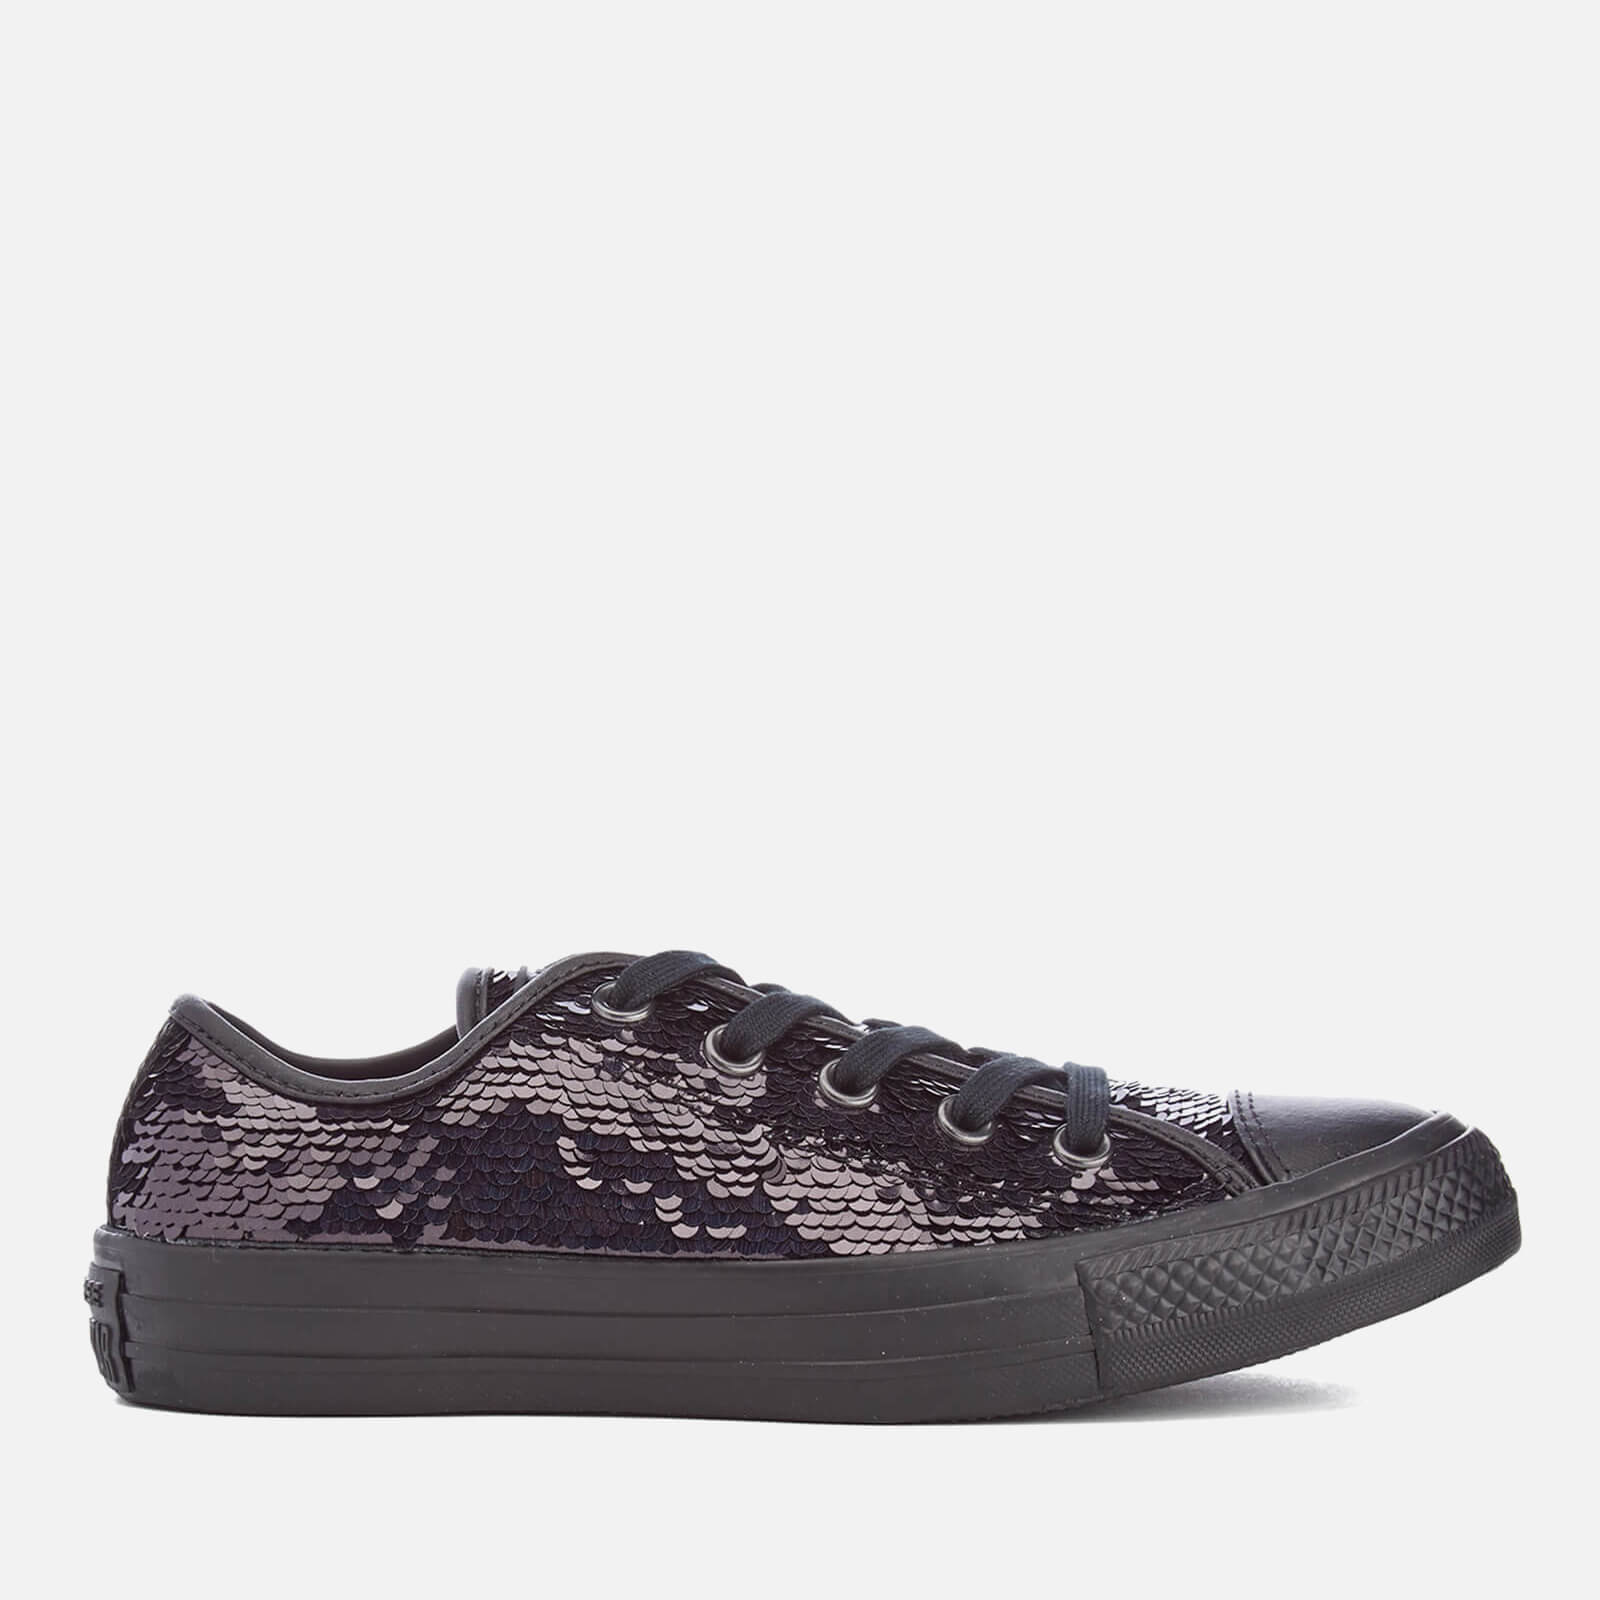 d6ea1d2860c8 Converse Women's Chuck Taylor All Star Holiday Party OX Trainers - Black  Sequin | FREE UK Delivery | Allsole